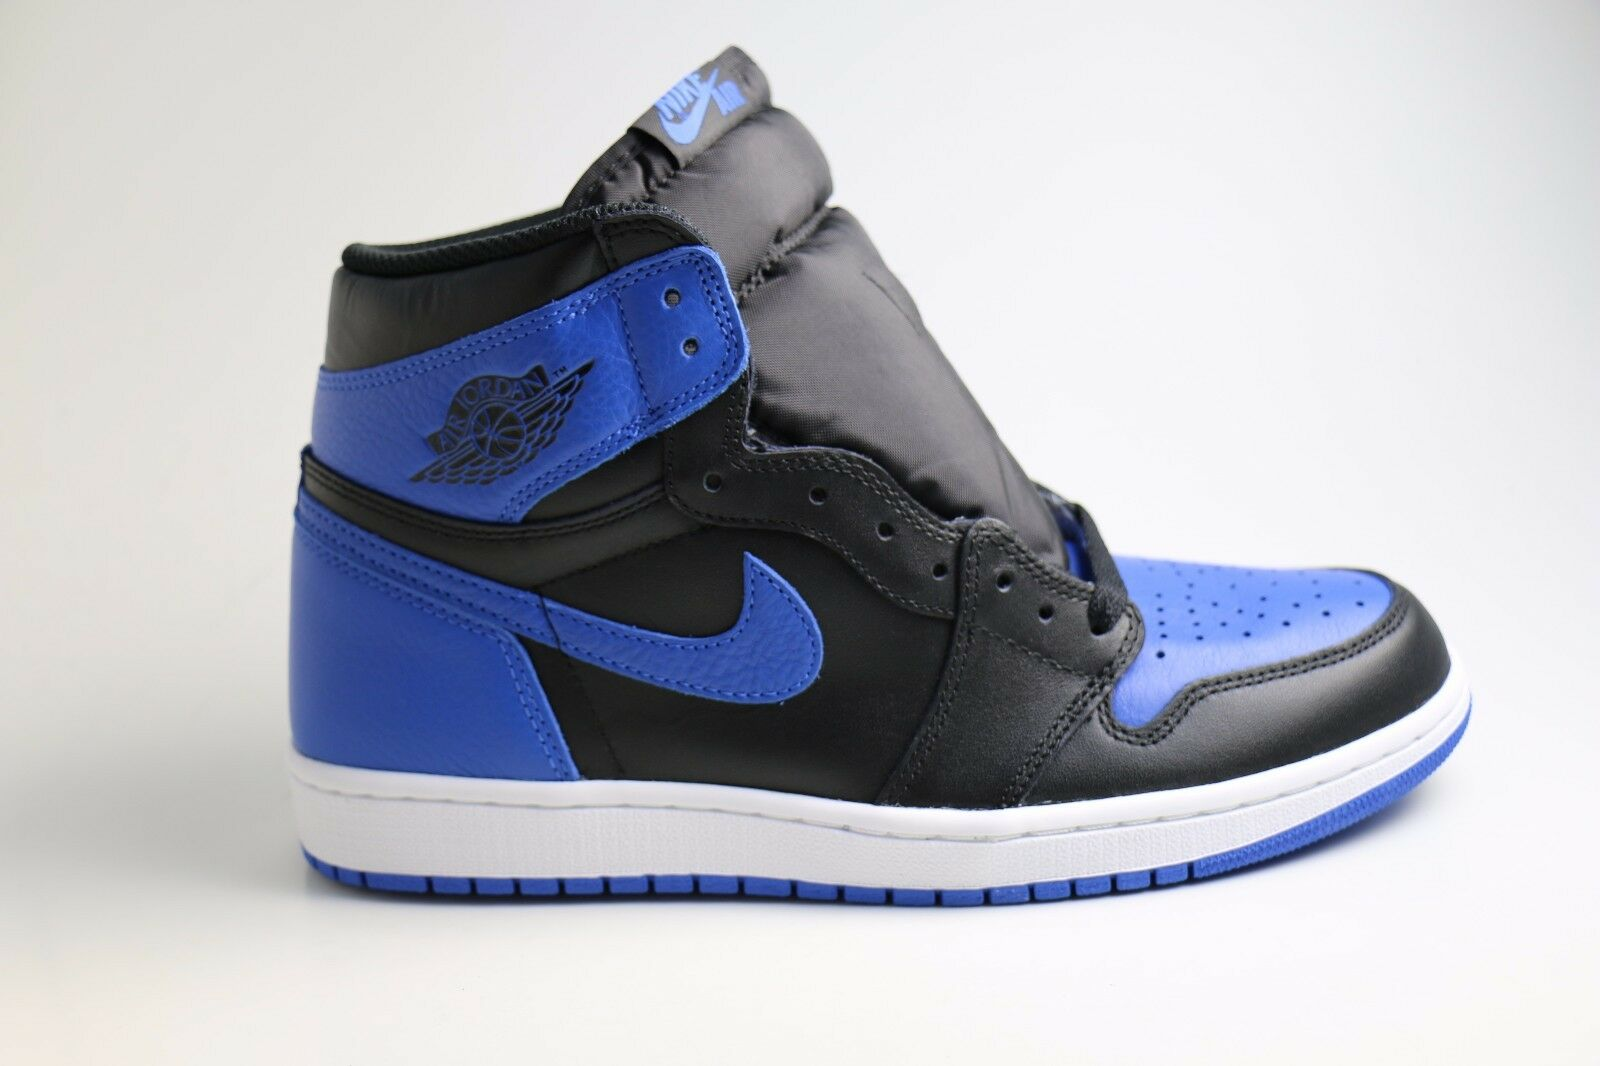 Nike Air Jordan 1 Retro HIGH OG Black Royal 41 42 43 44,5 45 46 9 11  555088 007